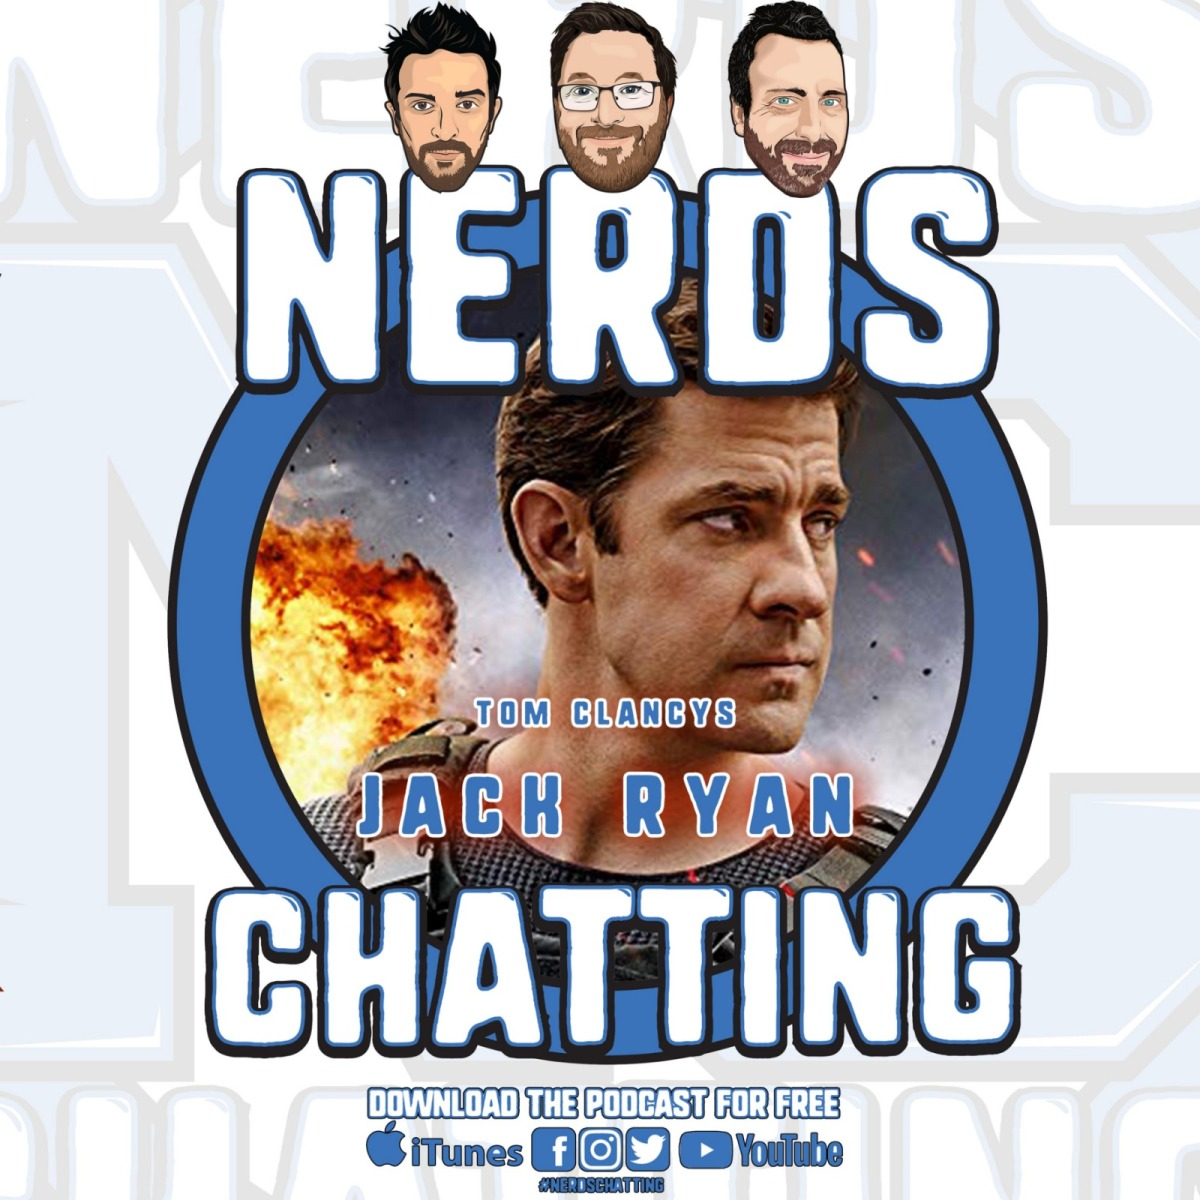 New podcast reviewing Jack Ryan